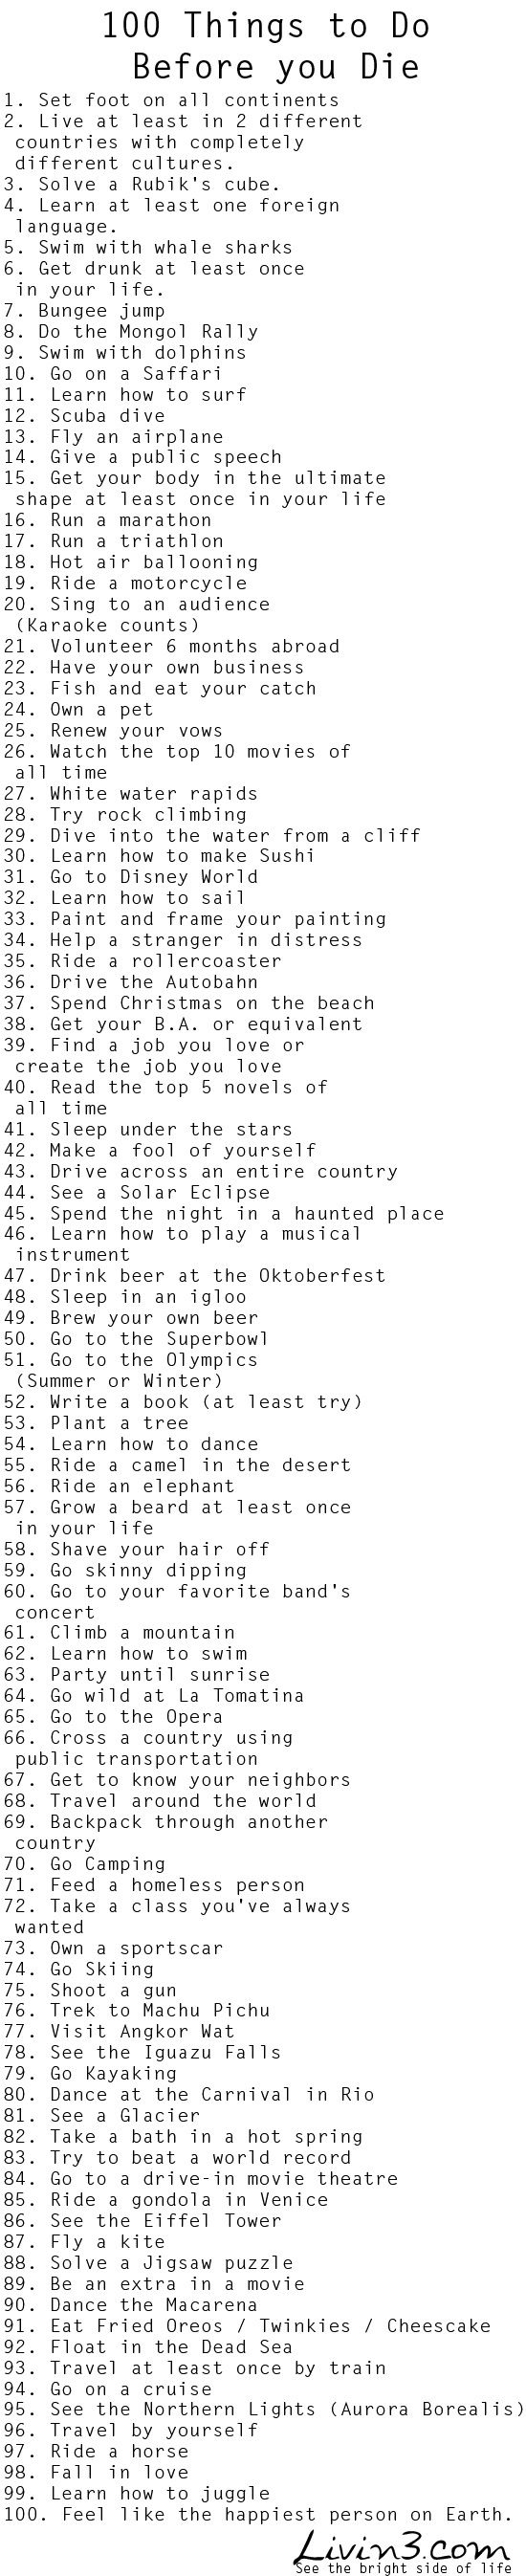 I may not do everything on here, but it'd be fun to check off all the things I DO want to do before I die :)